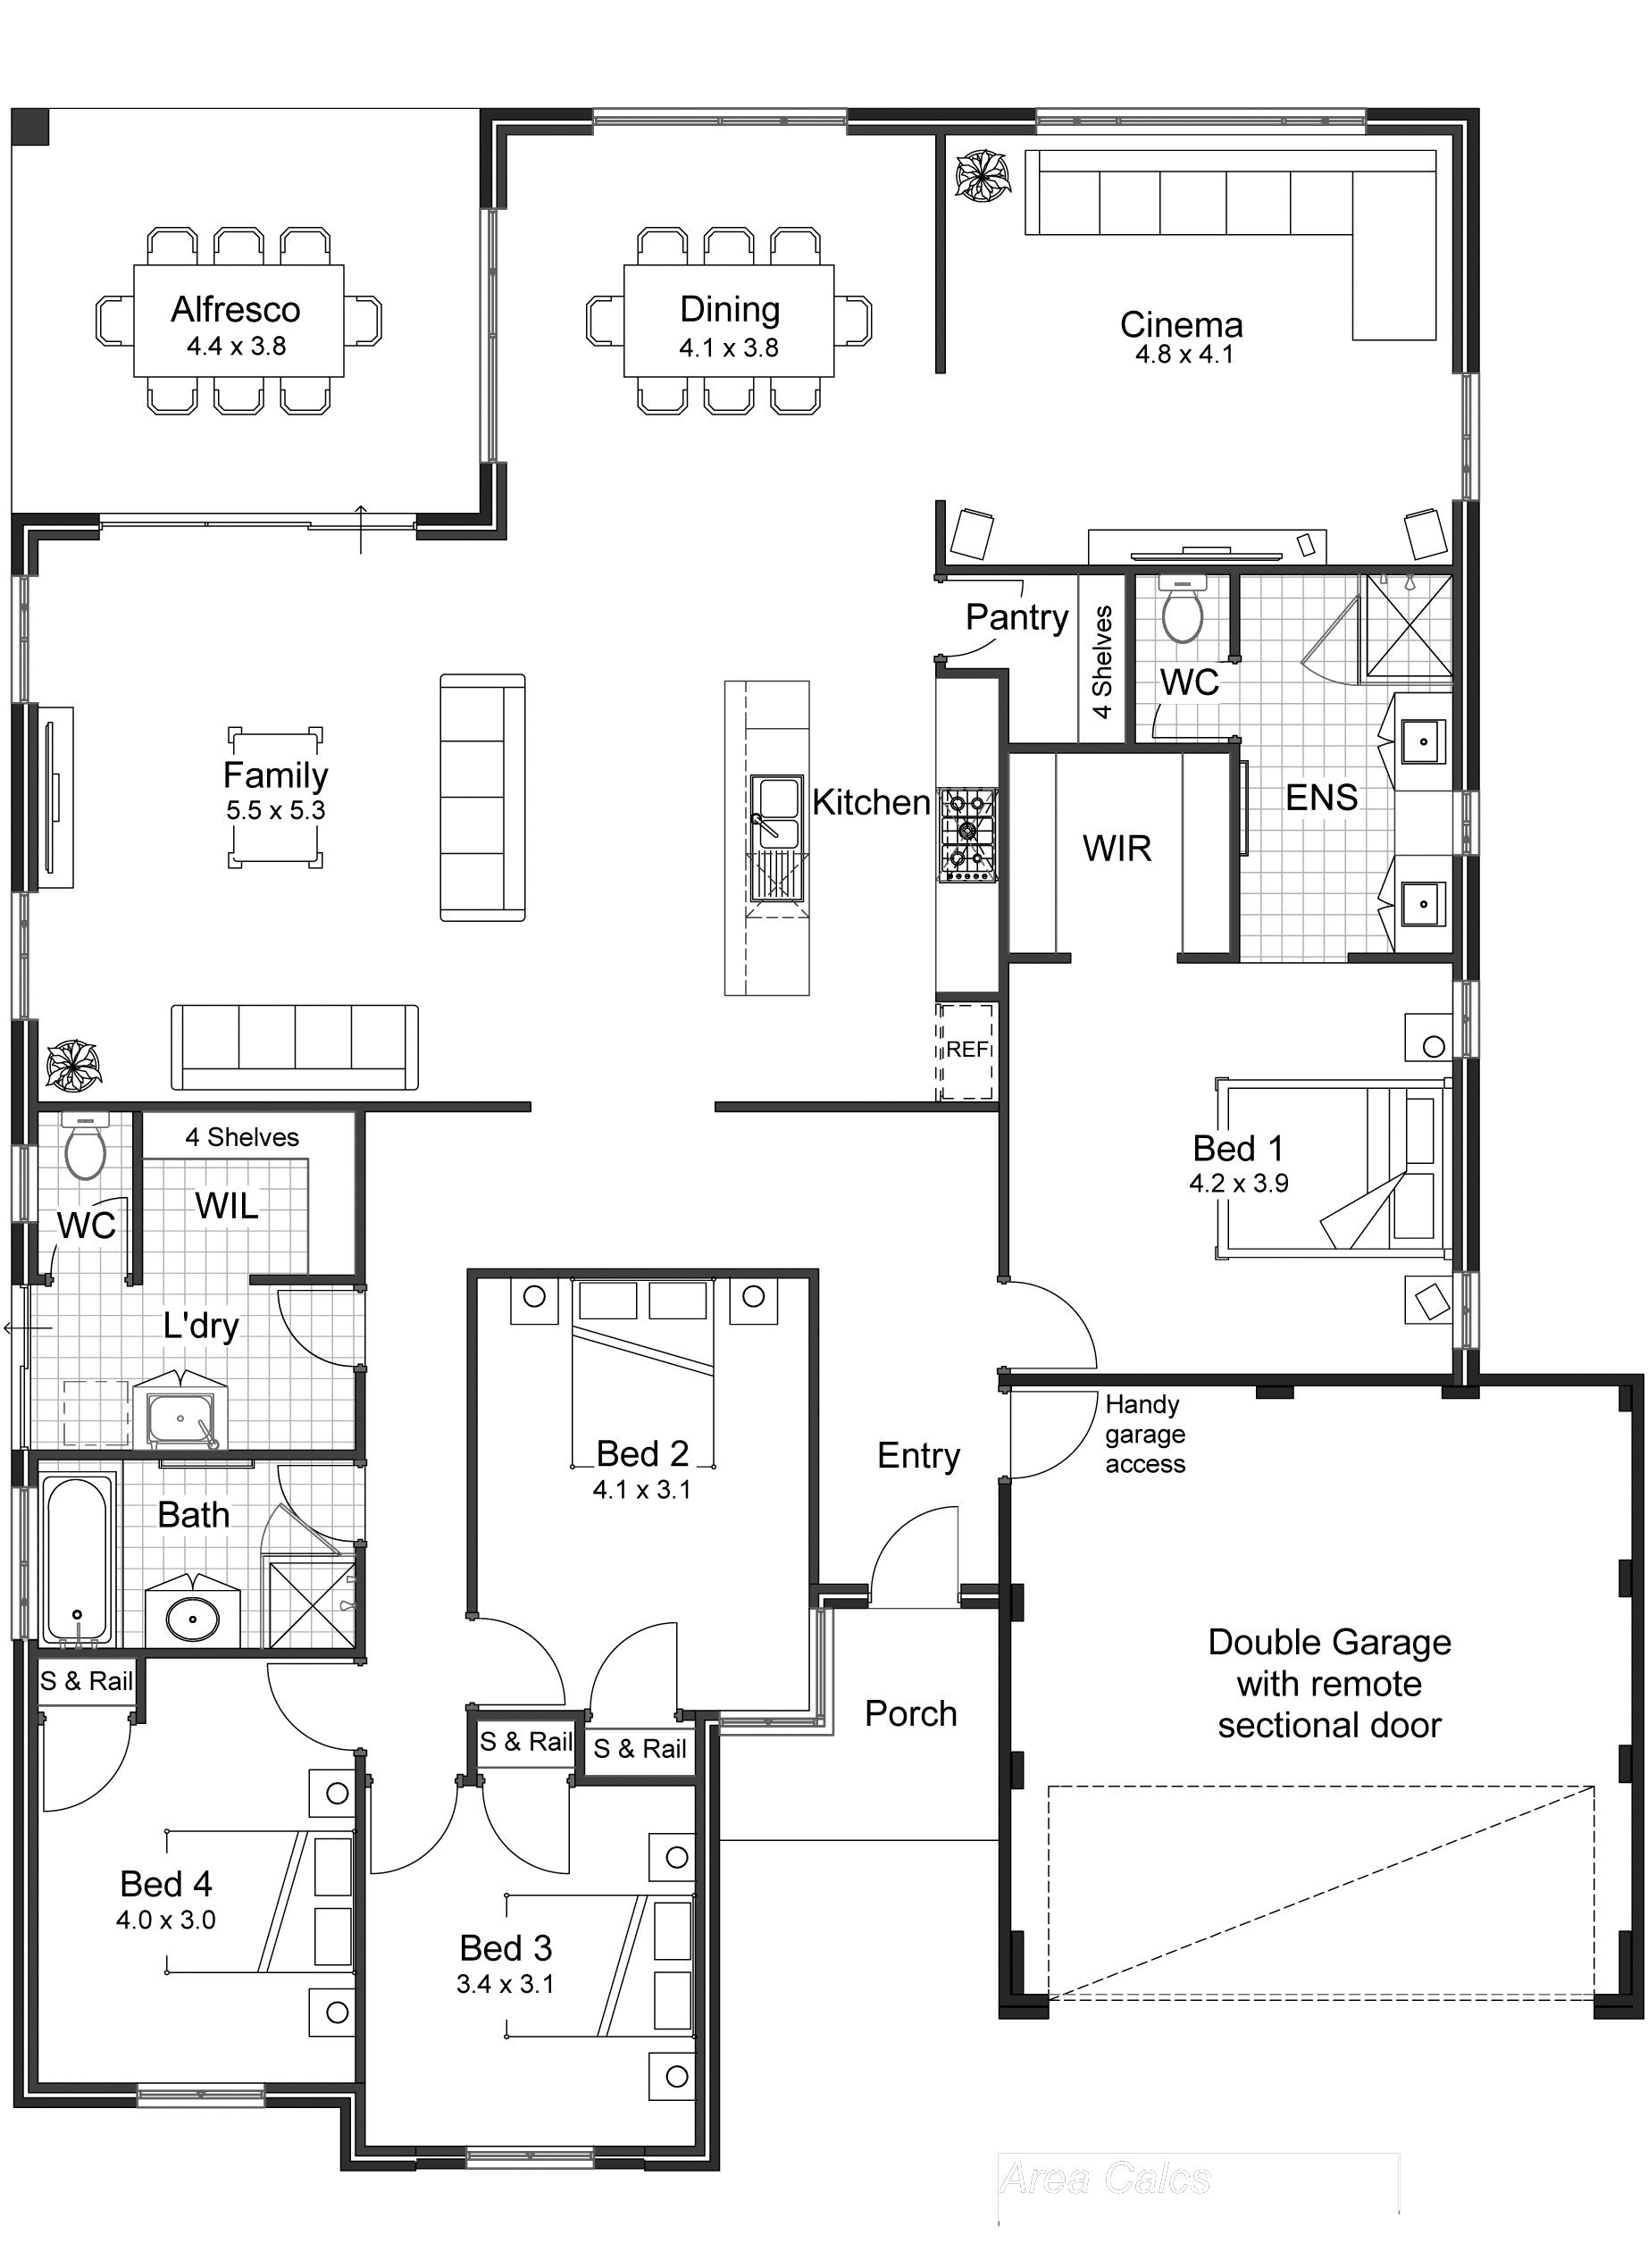 creative open floor plans homes inspirational home open concept kitchen living room floor plan and design